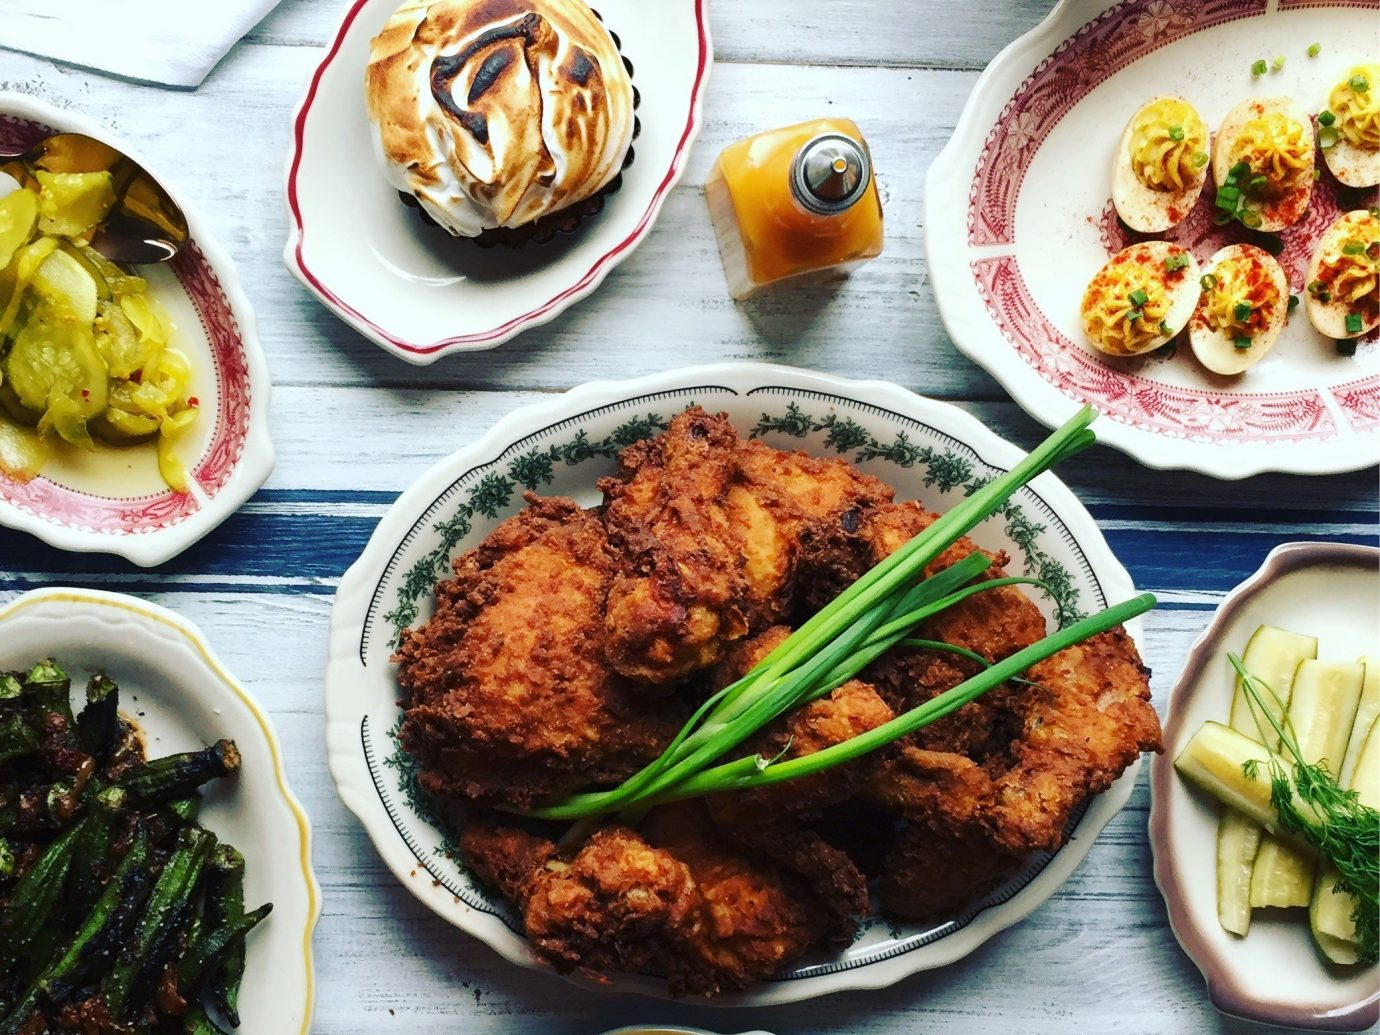 Trip Ideas plate food dish meal cuisine different lunch asian food fried food chinese food plate lunch breakfast side dish korean food recipe southeast asian food Seafood malaysian food thai food several arranged vegetable